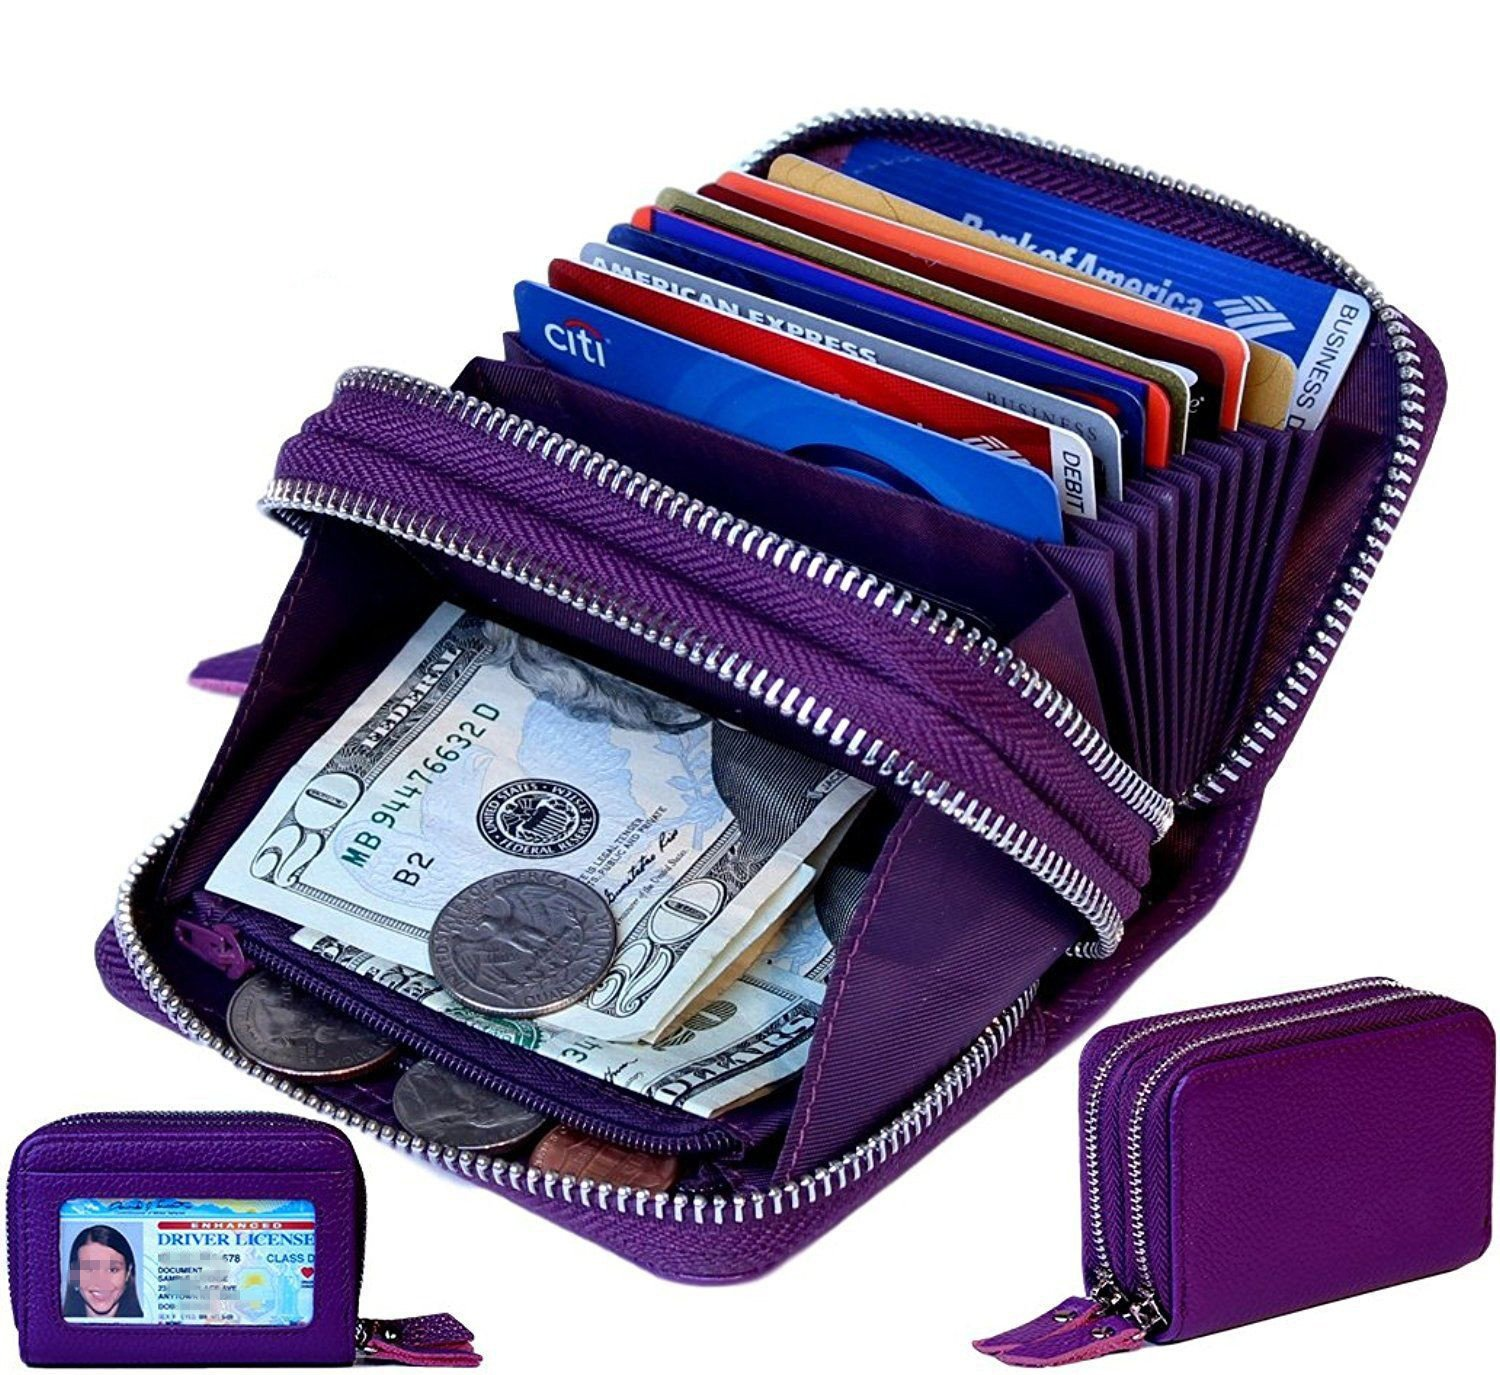 TraderPlus Women's RFID Blocking Leather Zipper Card Wallet Small Purse Credit Card Case Holder for Christmas Gift (Purple) by TRADERPLUS